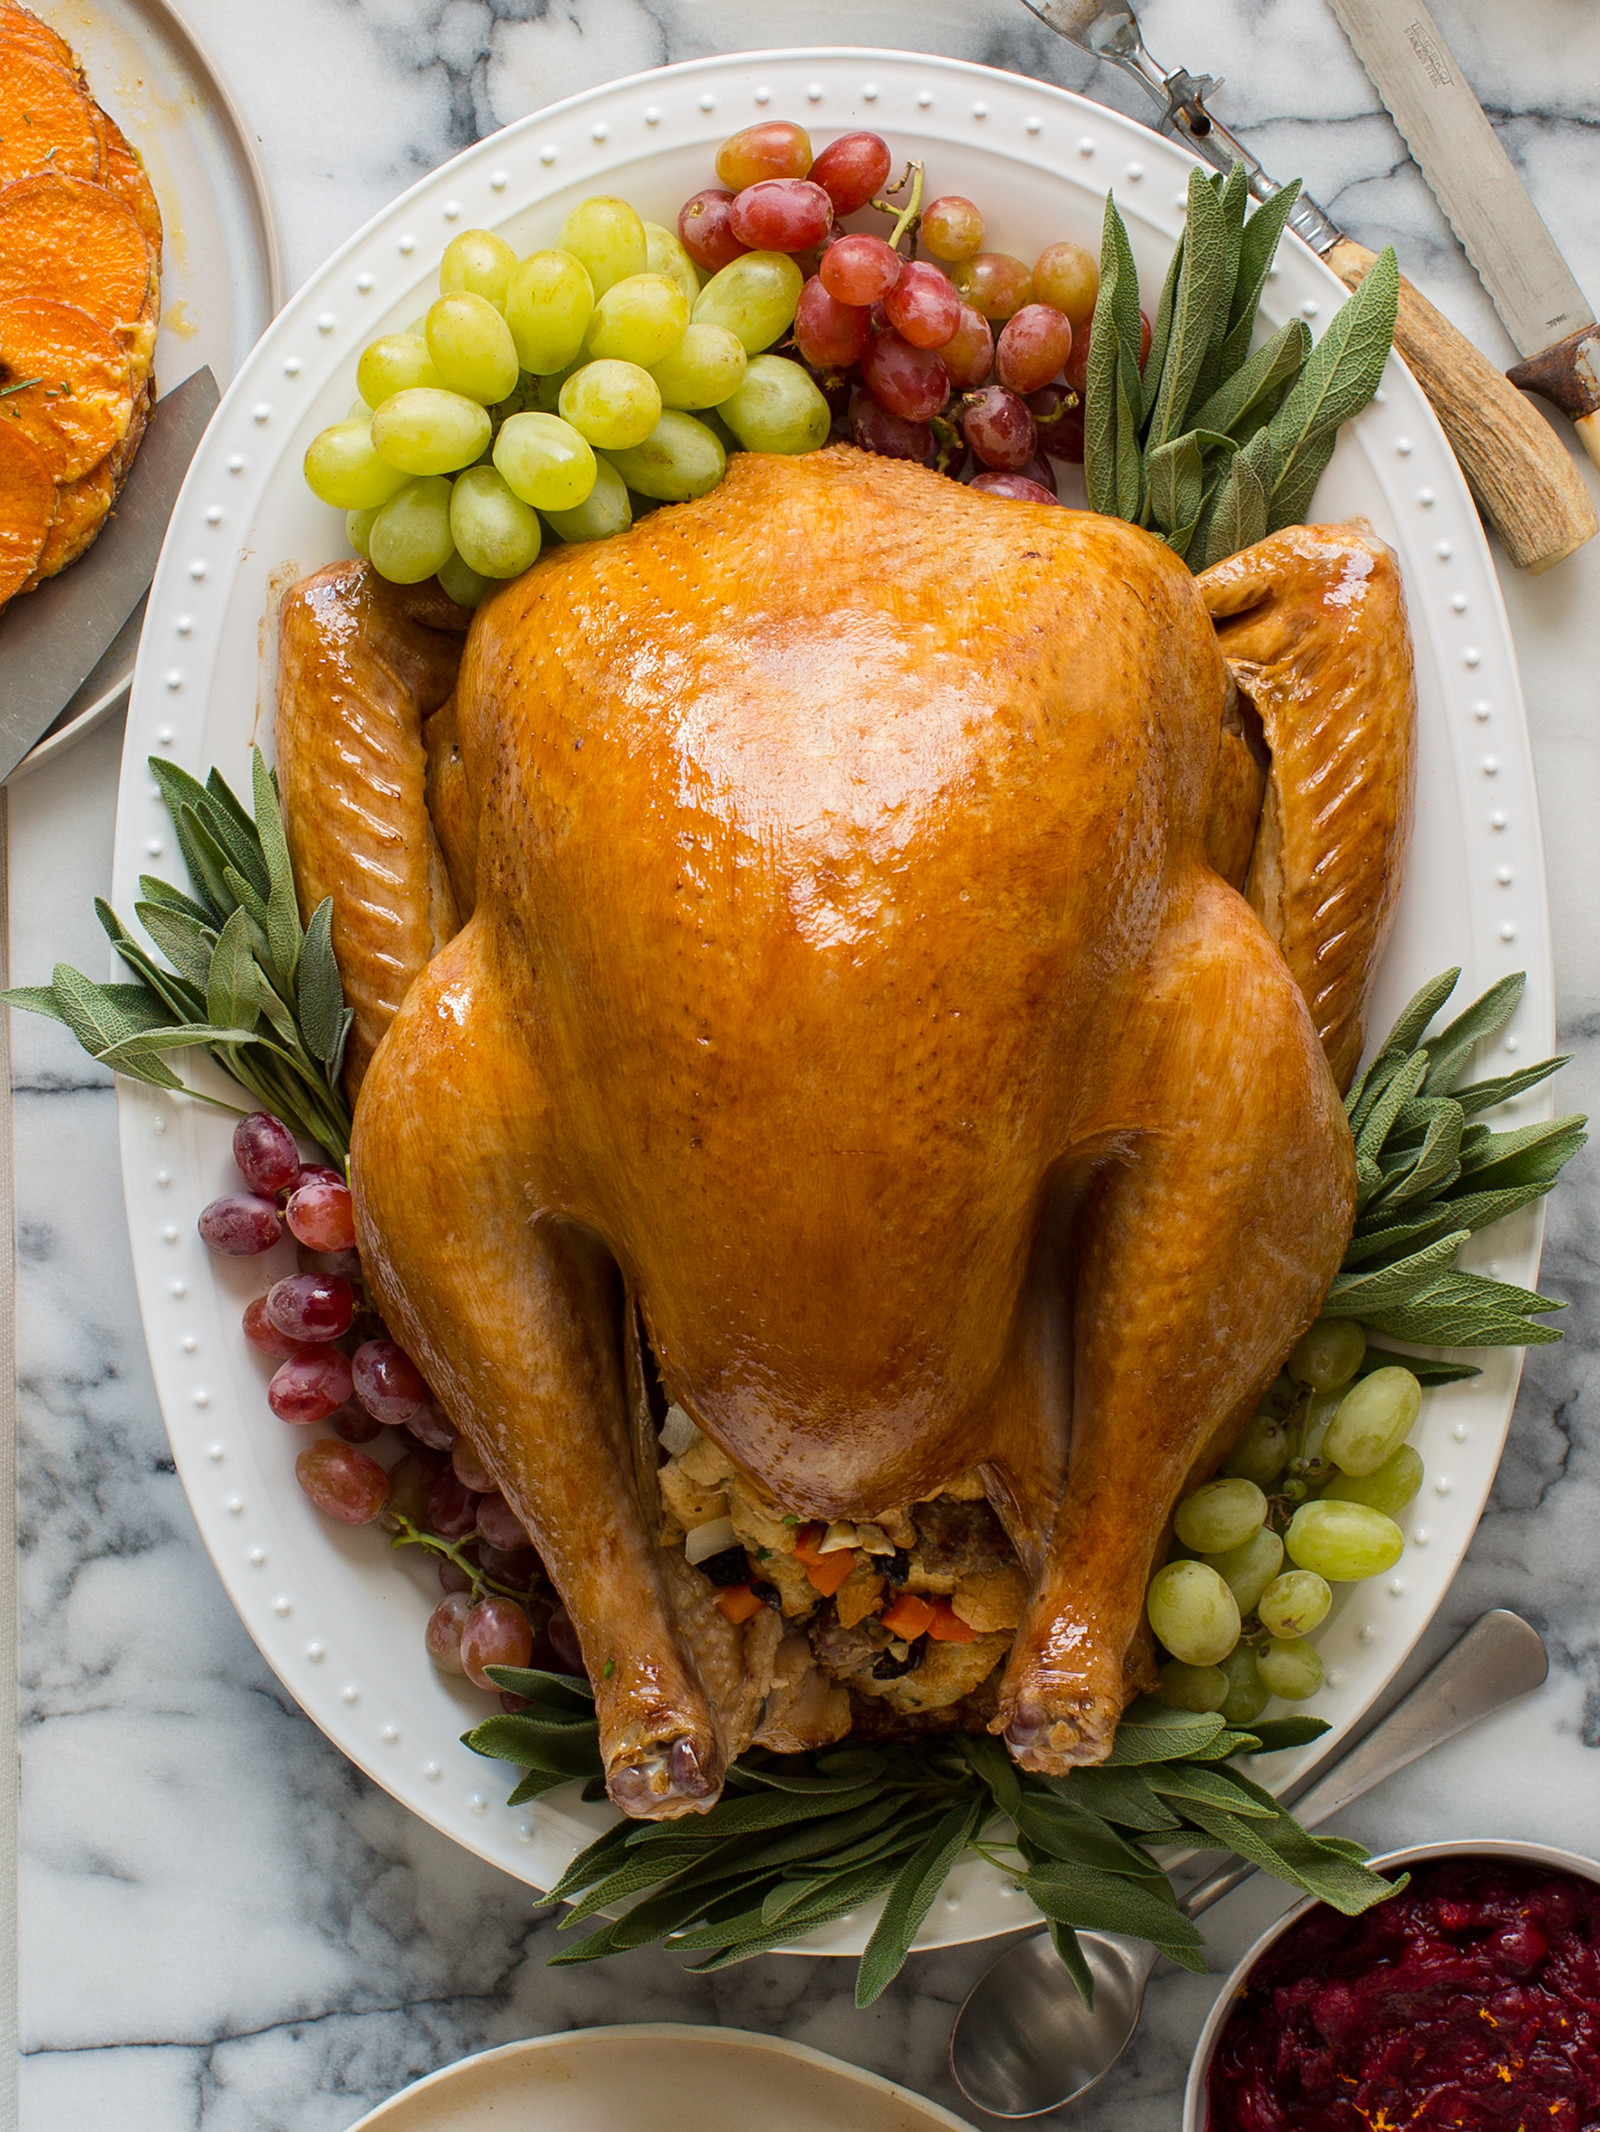 Roasted Turkey Recipes Thanksgiving  Citrus and Herb Roasted Turkey Thanksgiving